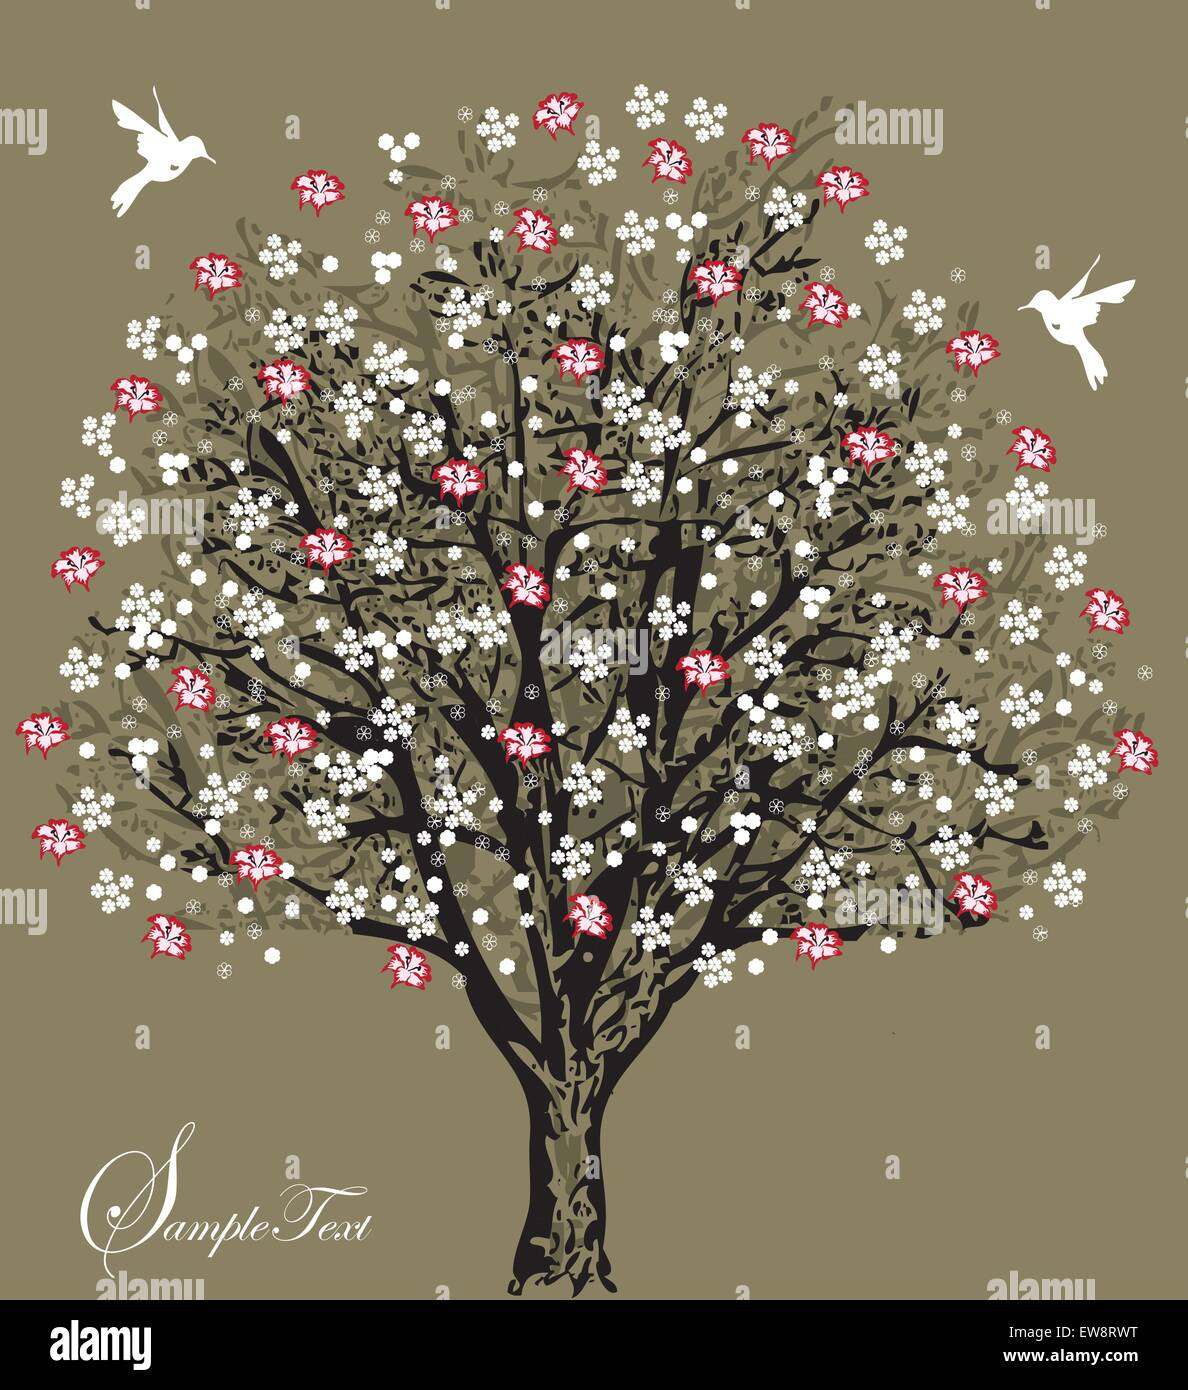 Vintage Wedding Invitation Card With Elegant Retro Floral Tree Design Red And White Flowers Birds On Gray Vector Illustration: Floral Wedding Invitations With Tree At Websimilar.org